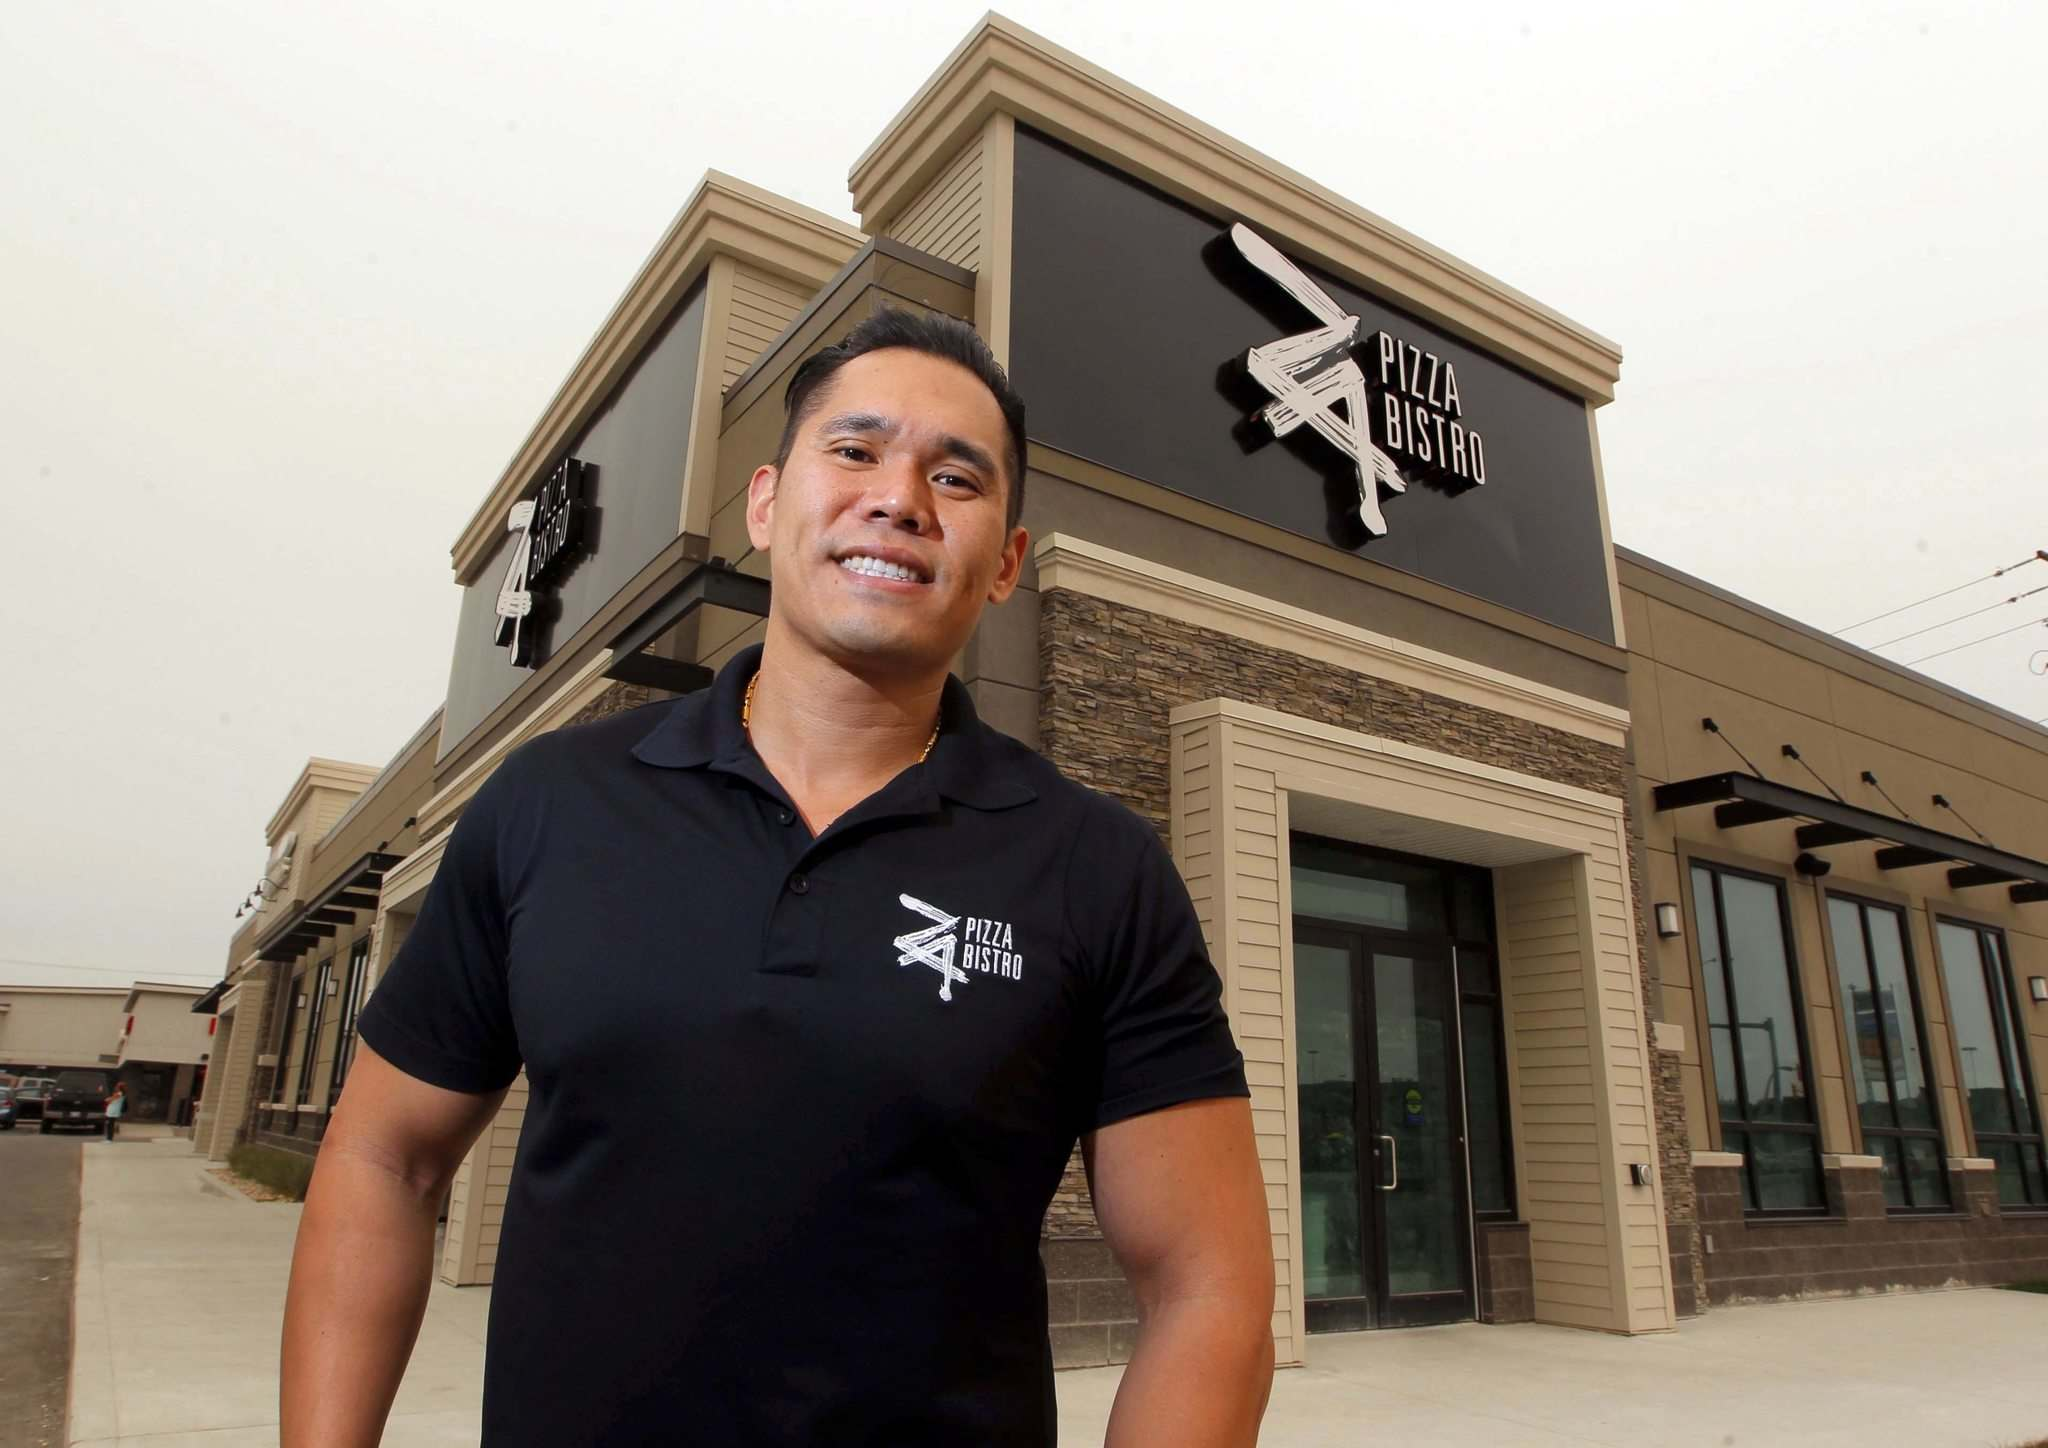 BORIS MINKEVICH / WINNIPEG FREE PRESS</p><p>Manly Cheung, the founder of Za Pizza Bistro, is outside the new flagship location at 1573 Regent Ave. West., set to open in the first week of October.</p></p>